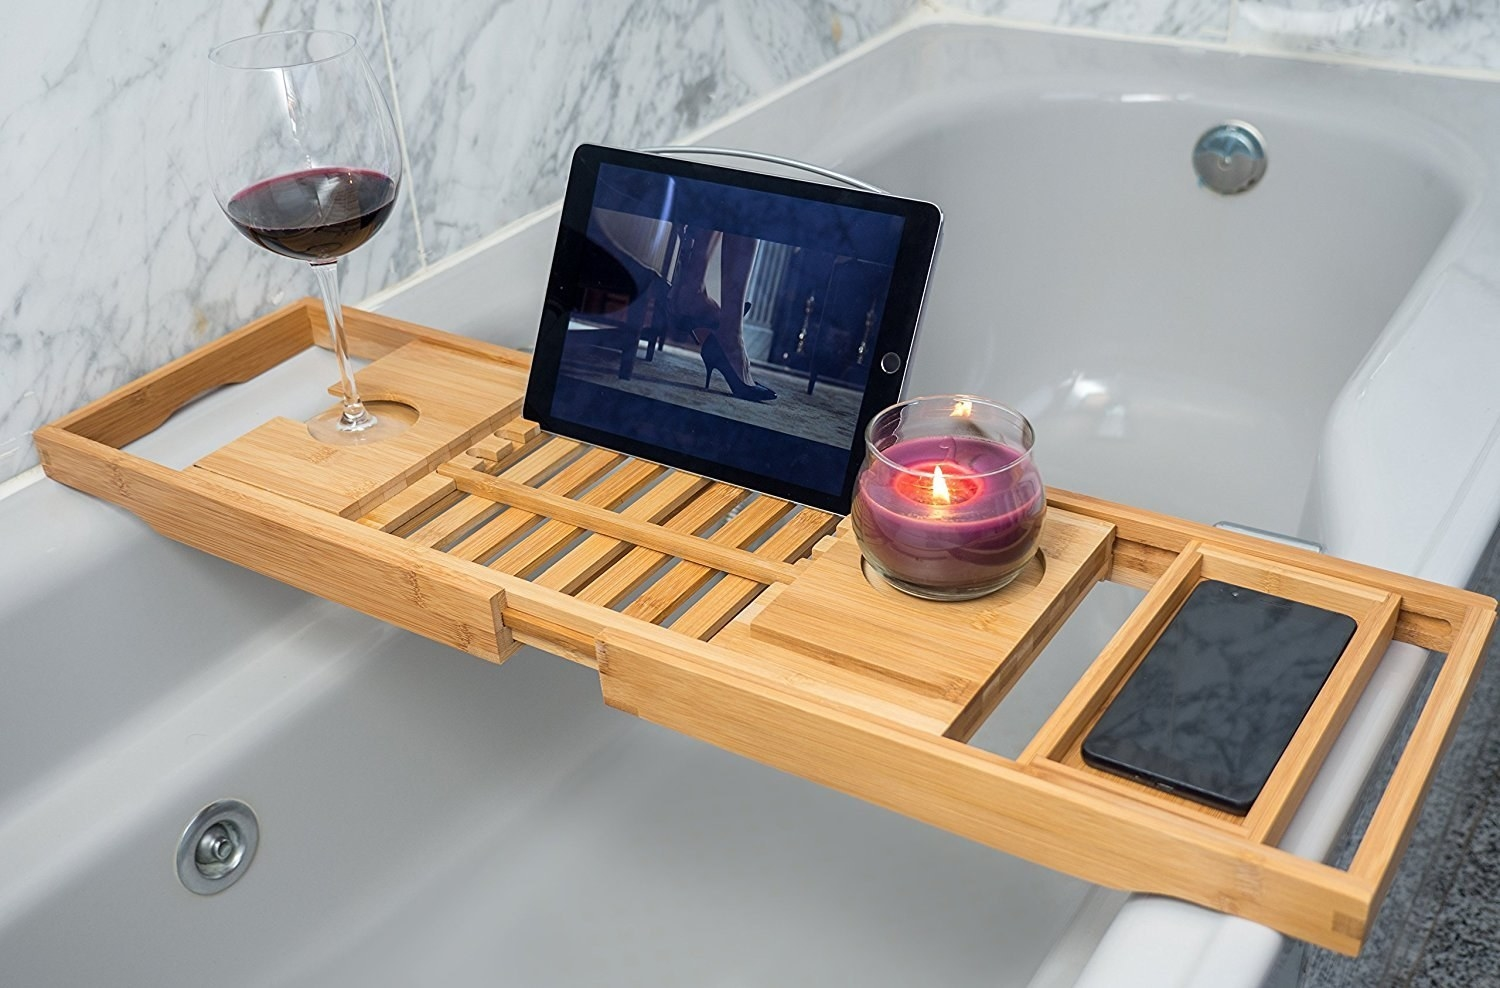 A bath caddy is stretched across a tub with a  glass of wine, a tablet and a candle